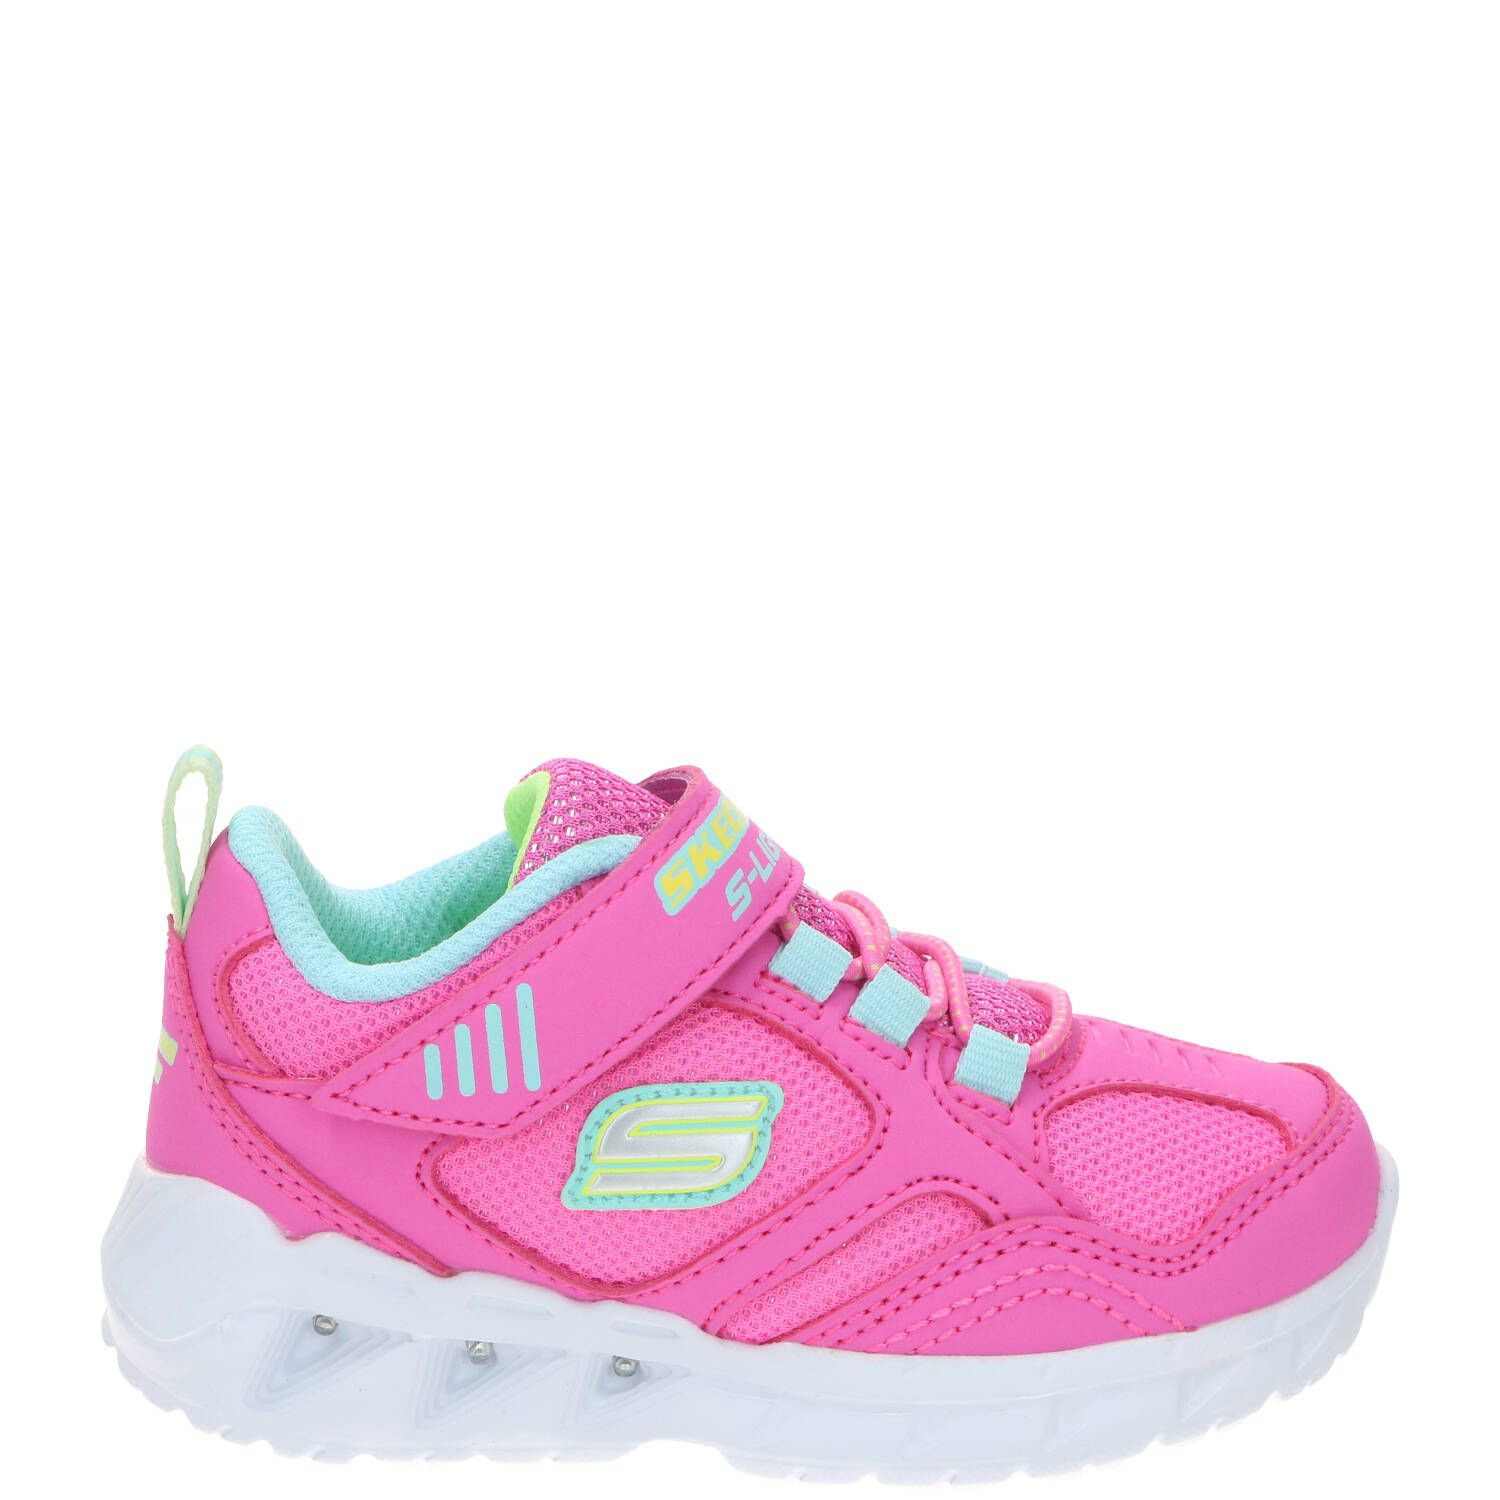 Skechers Magna-Lights Expert Level sneaker, Sneakers, Meisje, Maat 23,